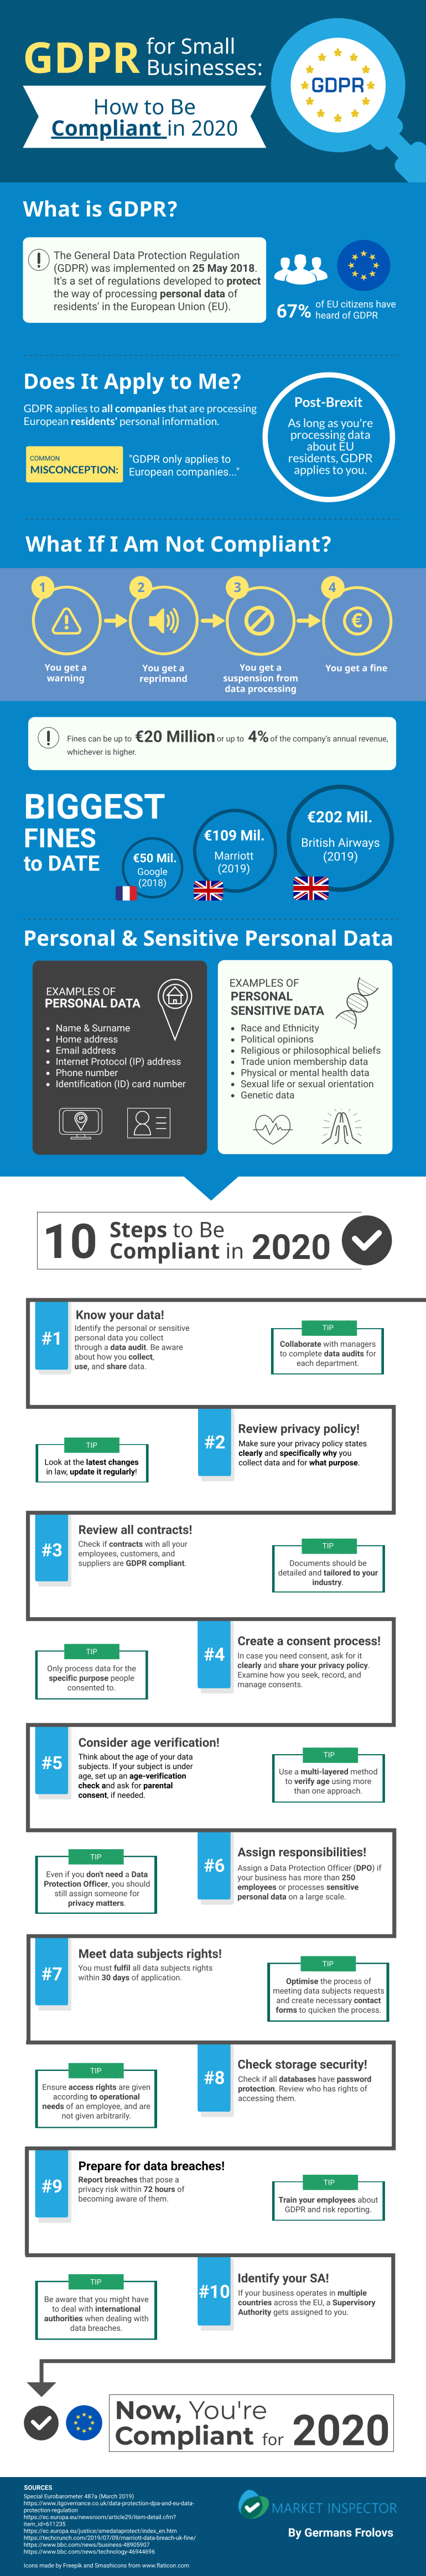 Infographic About GDPR for Small Businesses